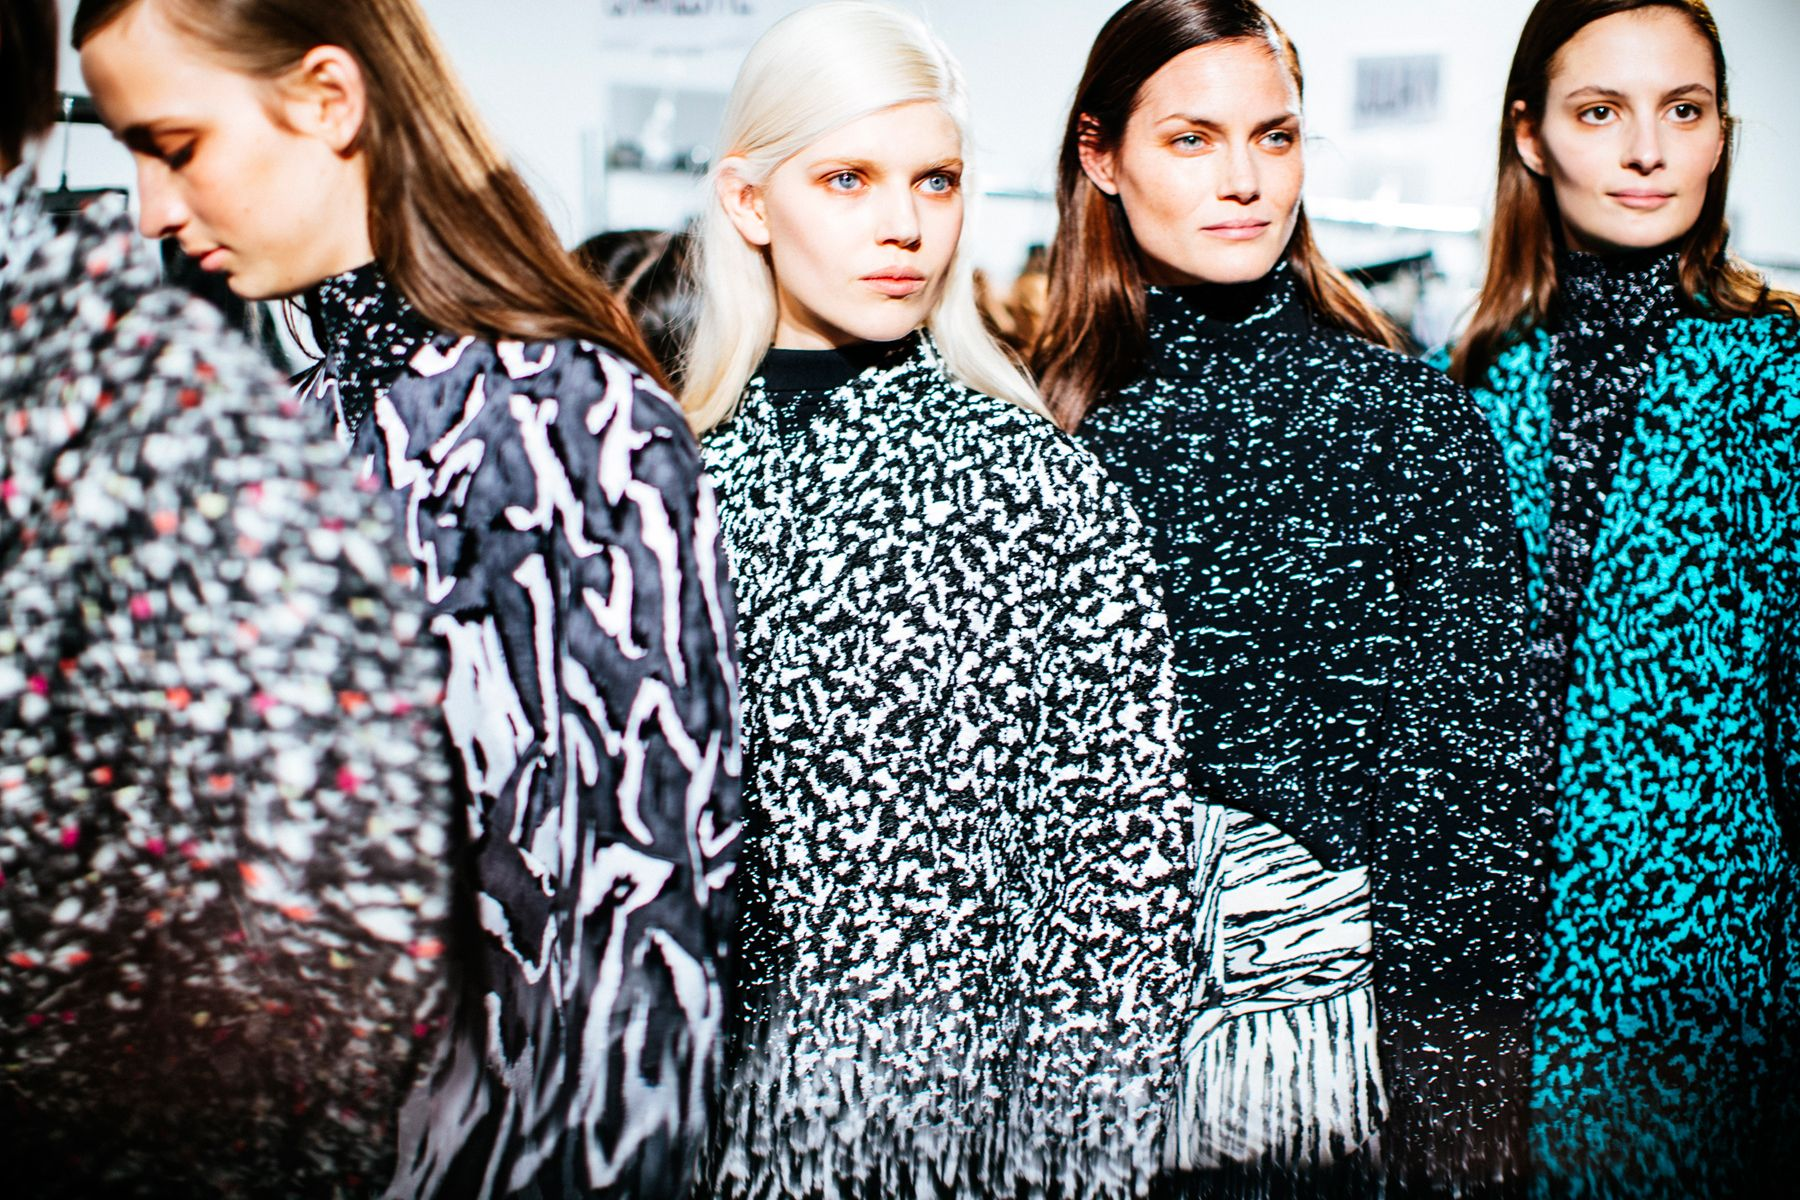 http://media.vogue.com/files/Deep, side-parted hair has been a running theme at shows from Alexander Wang and Opening Ceremony to Rodarte this week, but last night, when Proenza Schouler's model army stepped onto the runway in a similar variation of the look, the beauty directive w